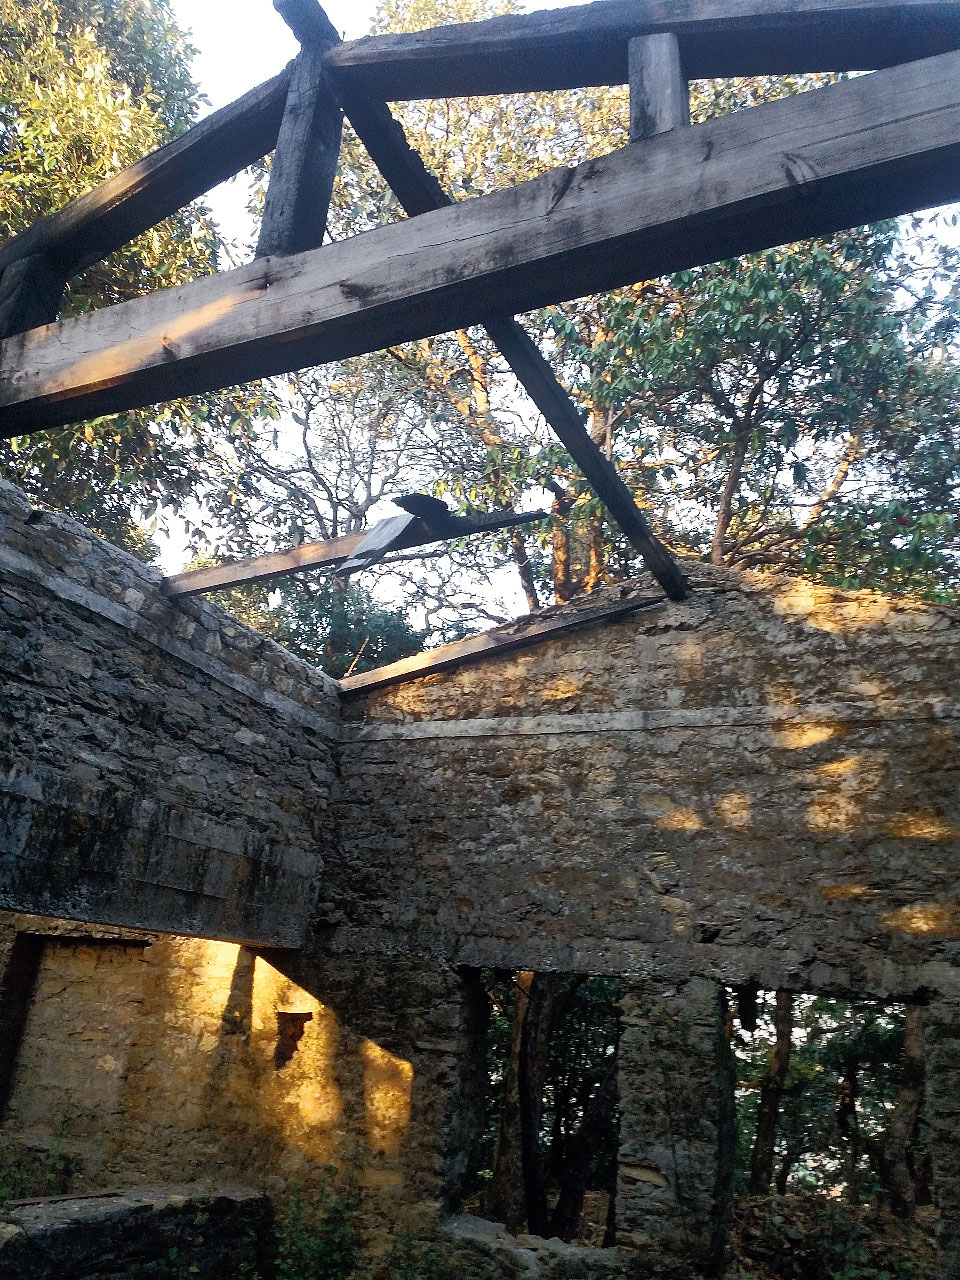 A portion of Tagore's rundown bungalow at Ramgarh